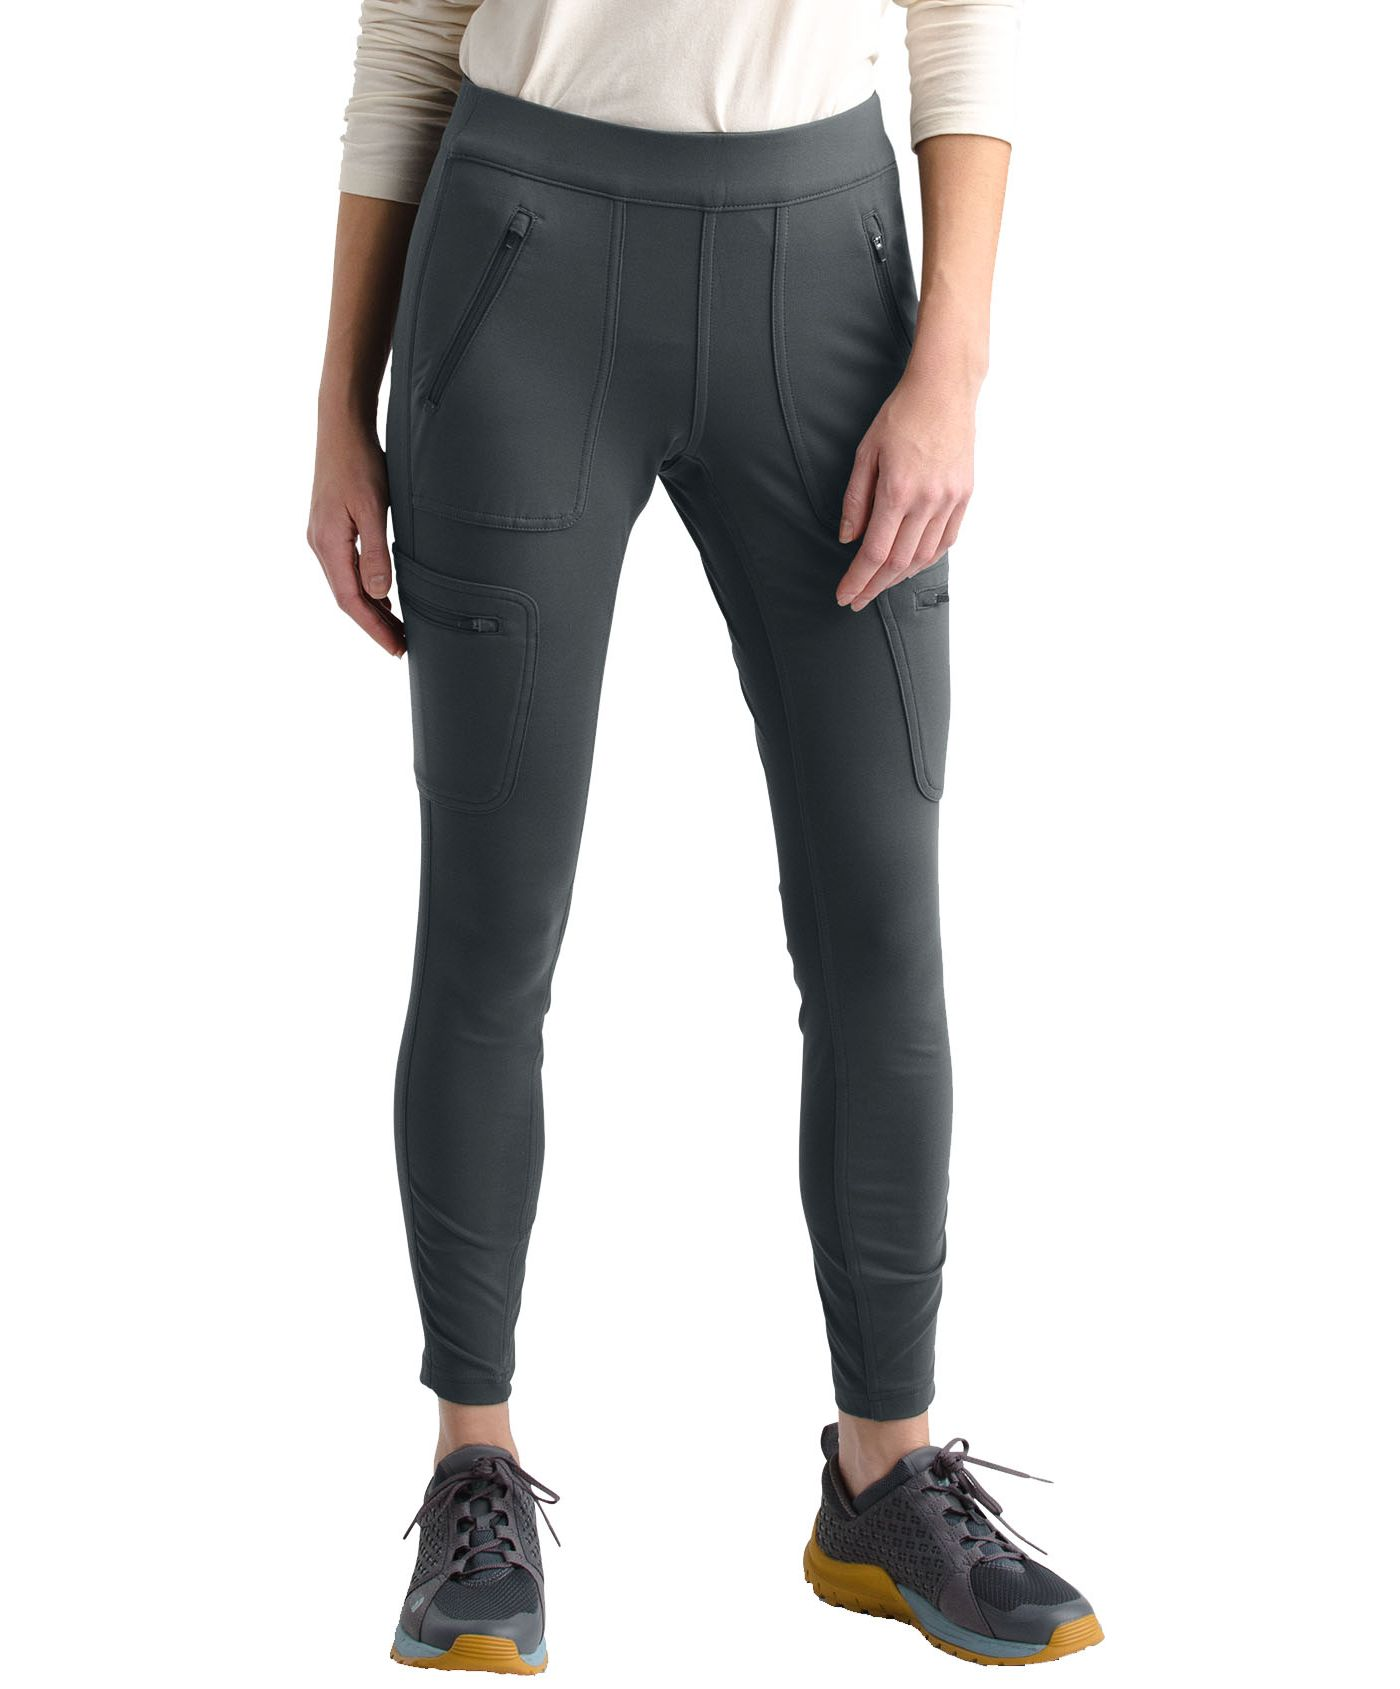 The North Face Women's Utility Hybrid Hiker Tights